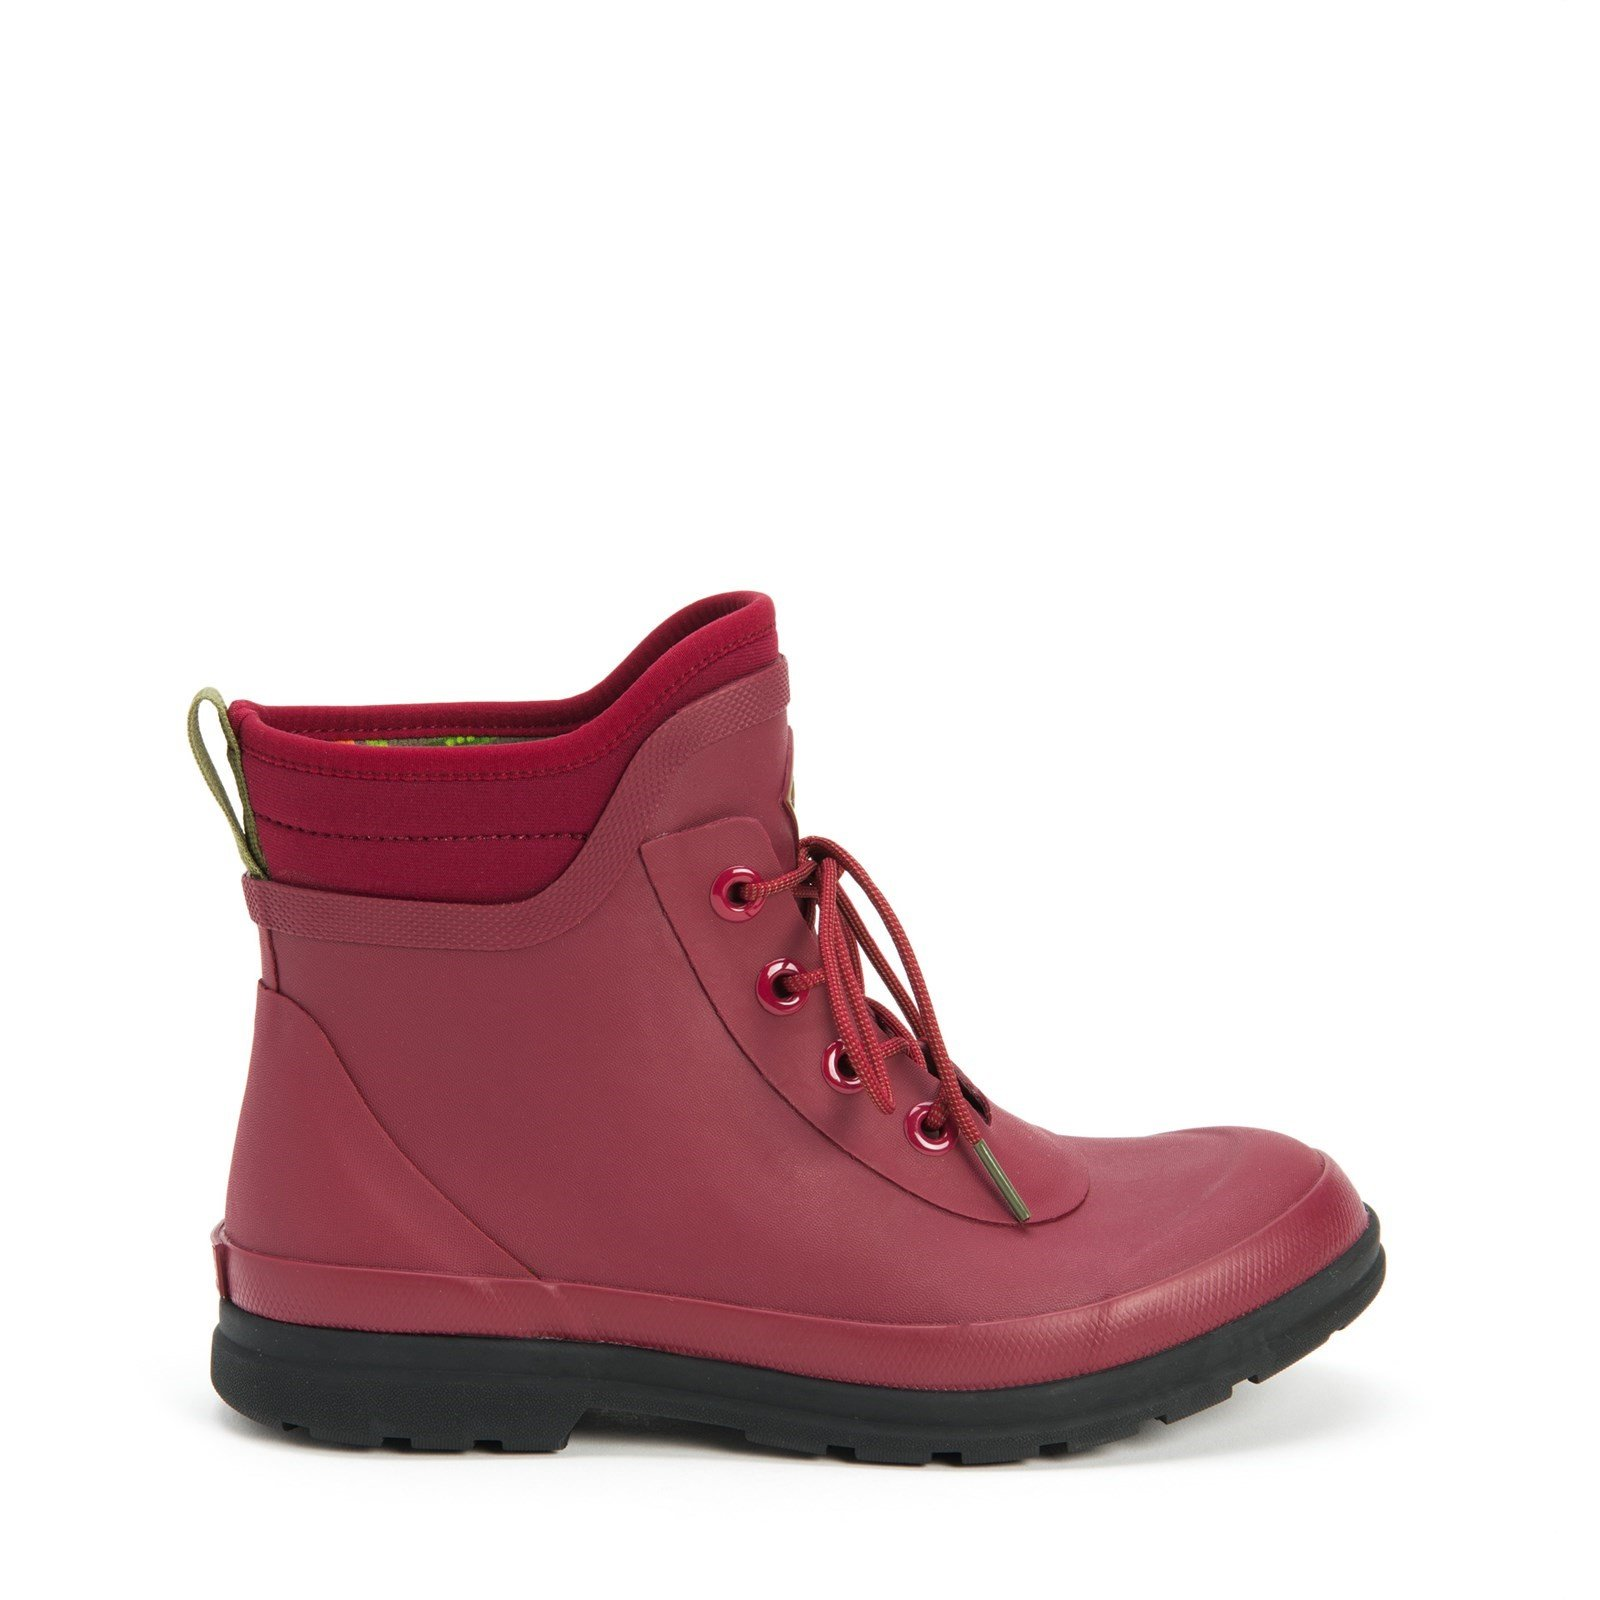 Muck Boots Women's Originals Lace Up Ankle Boot Various Colours 30079 - Berry 7